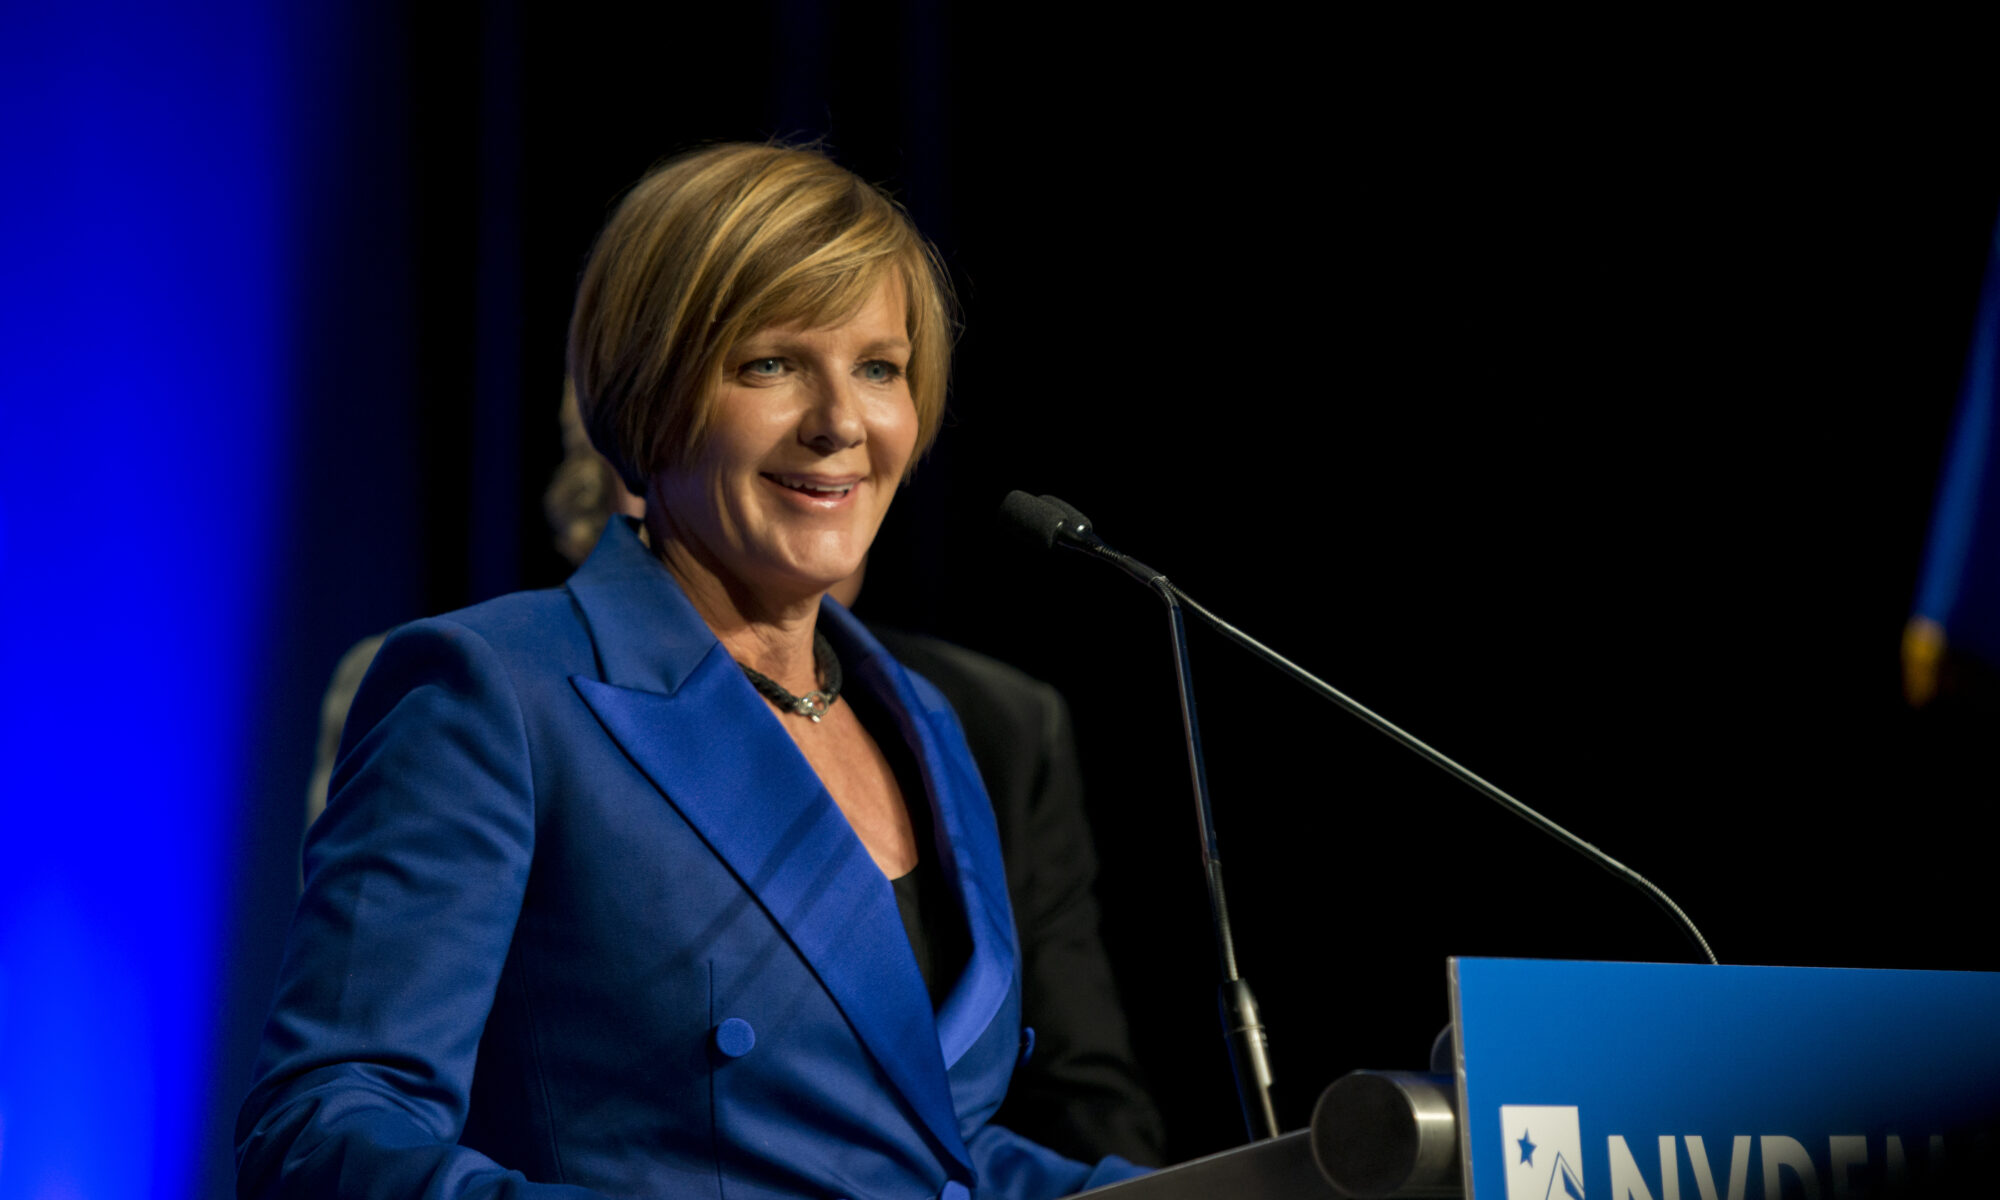 Susie Lee in a blue suit giving a speech